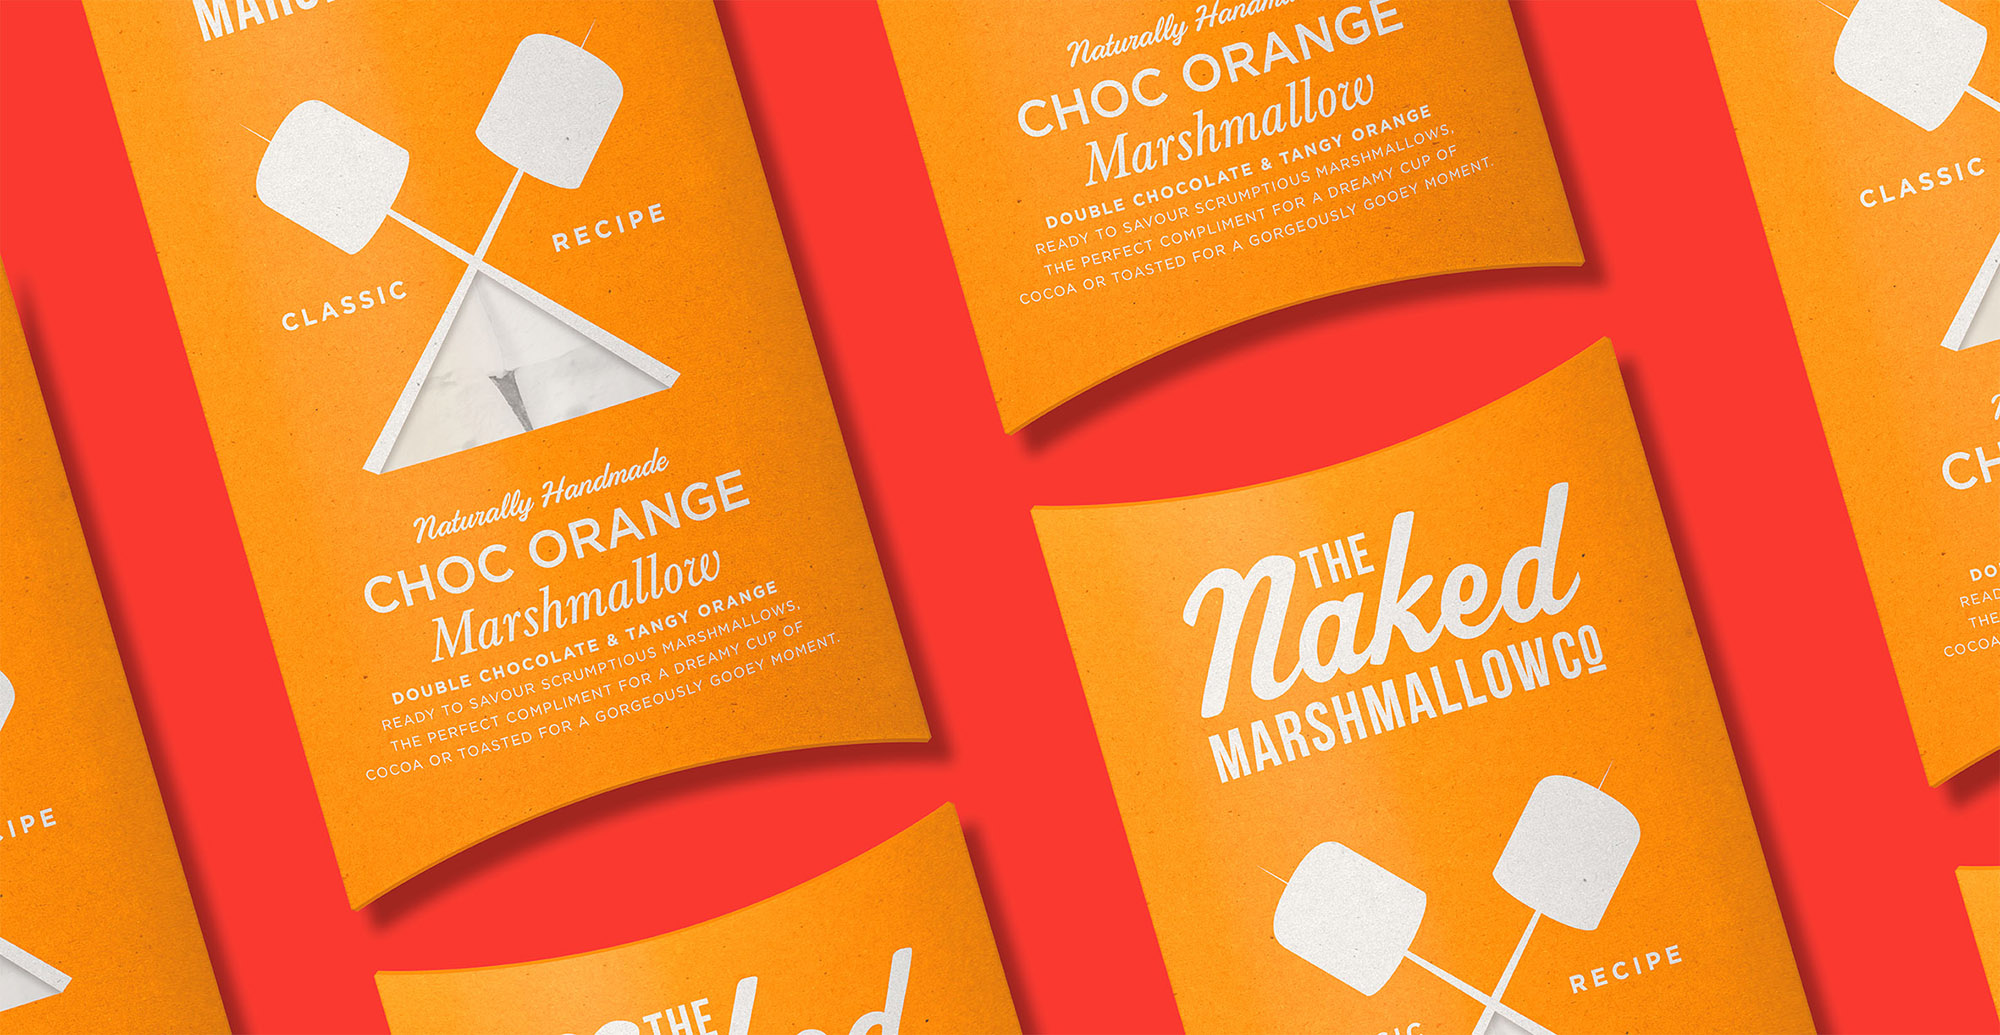 Branding and packaging design for confectionary brand The Naked Marshmallow Co by Design Happy London - Chocolate Orange packaging design